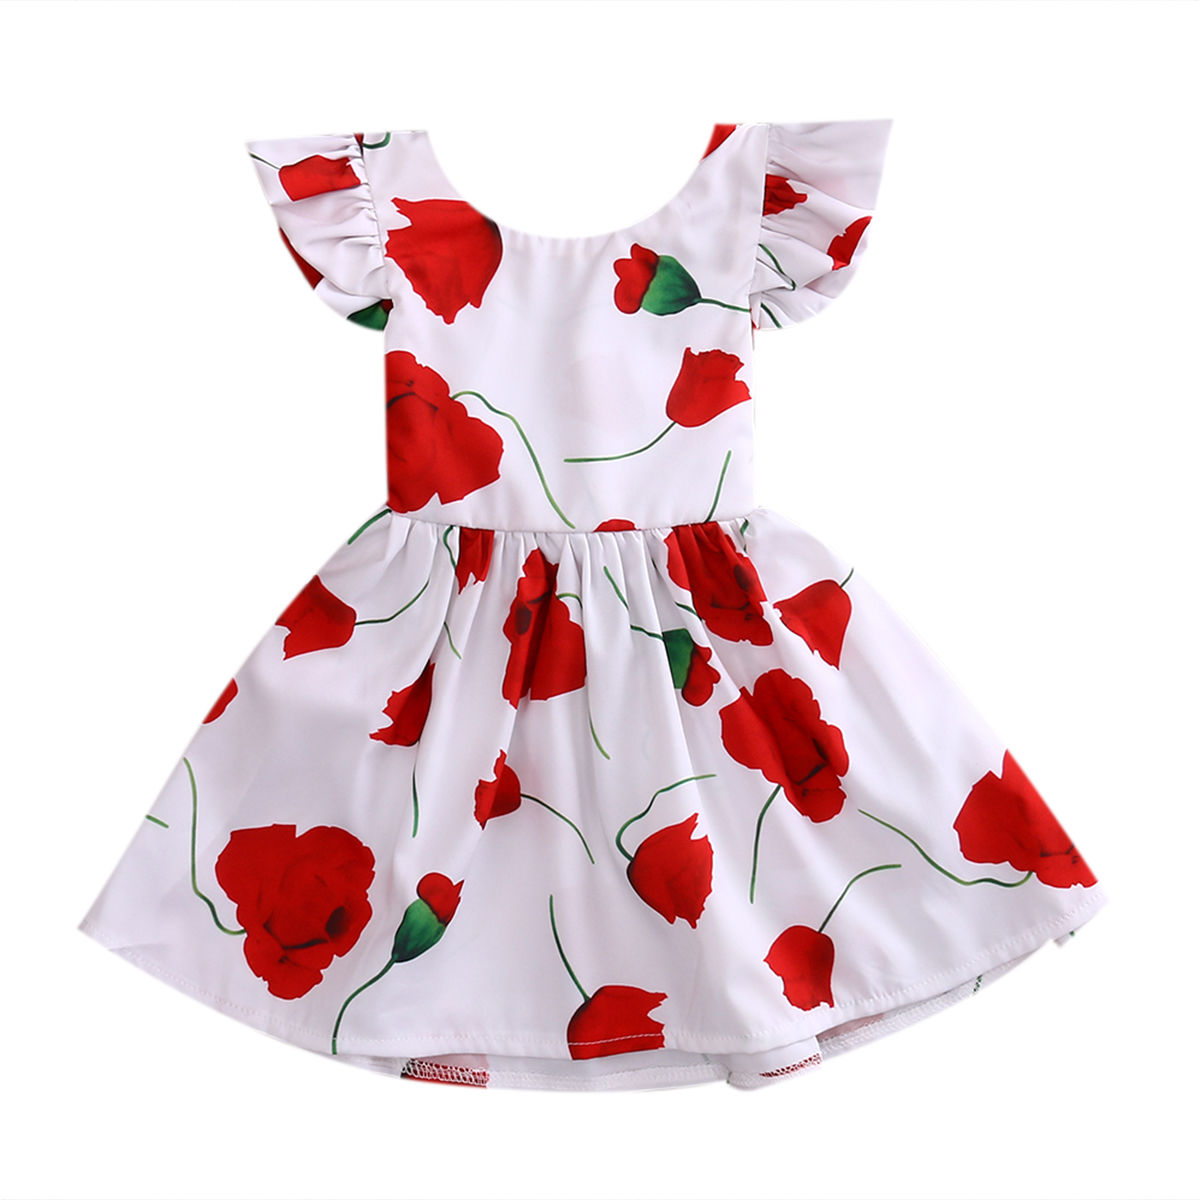 Flower Girls Clothes Princess Dress Kid Baby Party Pageant Floral Red Rose MIni Cute Sleeveless Tutu Dresses Girl cute summer dress for girls new fashion kid baby girl sleeveless rose flower printed dresses striped casual party dress vestidos